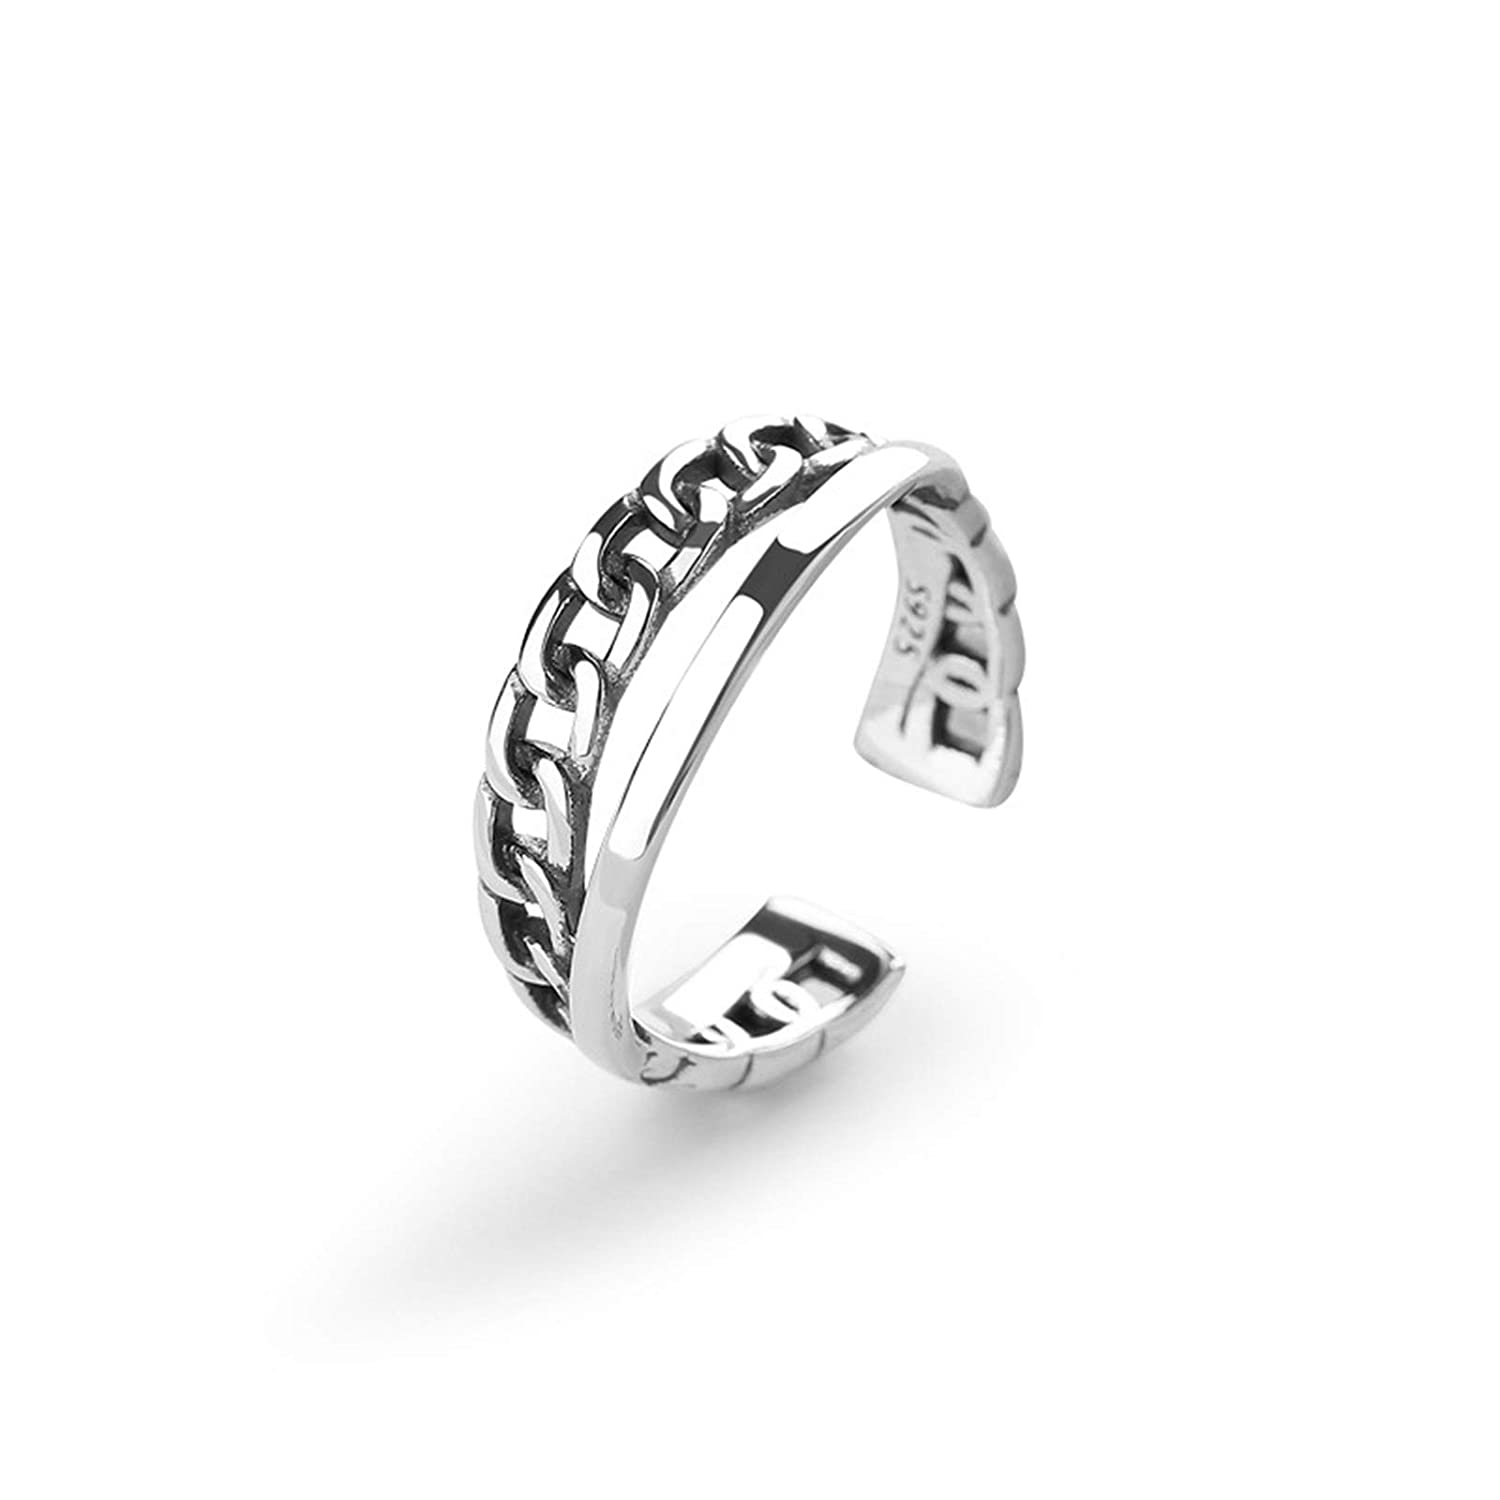 Daesar Sterling Silver Rings for Women Adjustable Ring Double Layer Link Chain Design Ring